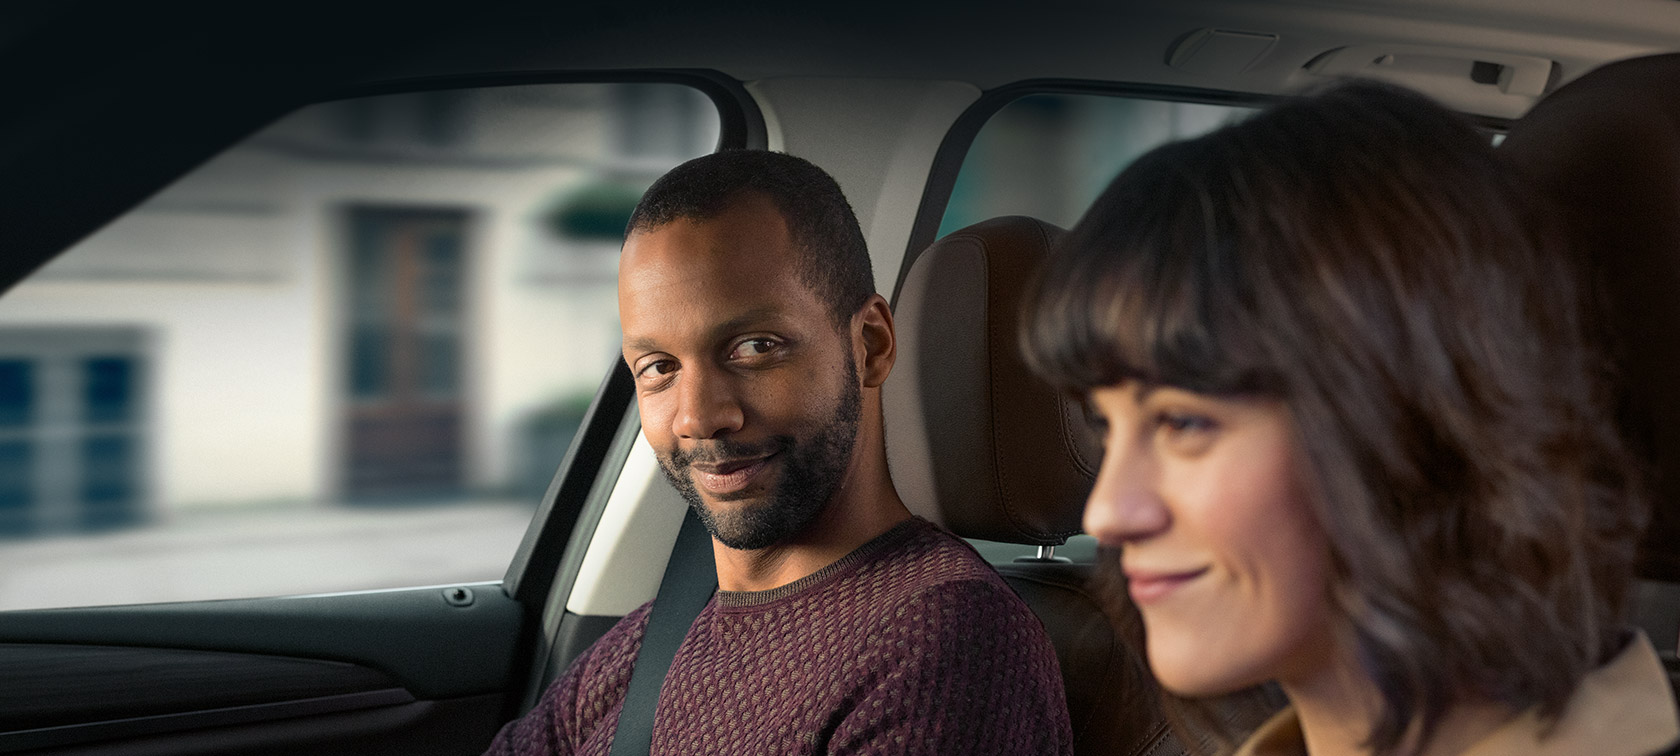 Women and men drive relaxed in BMW thanks to BMW Service Solutions